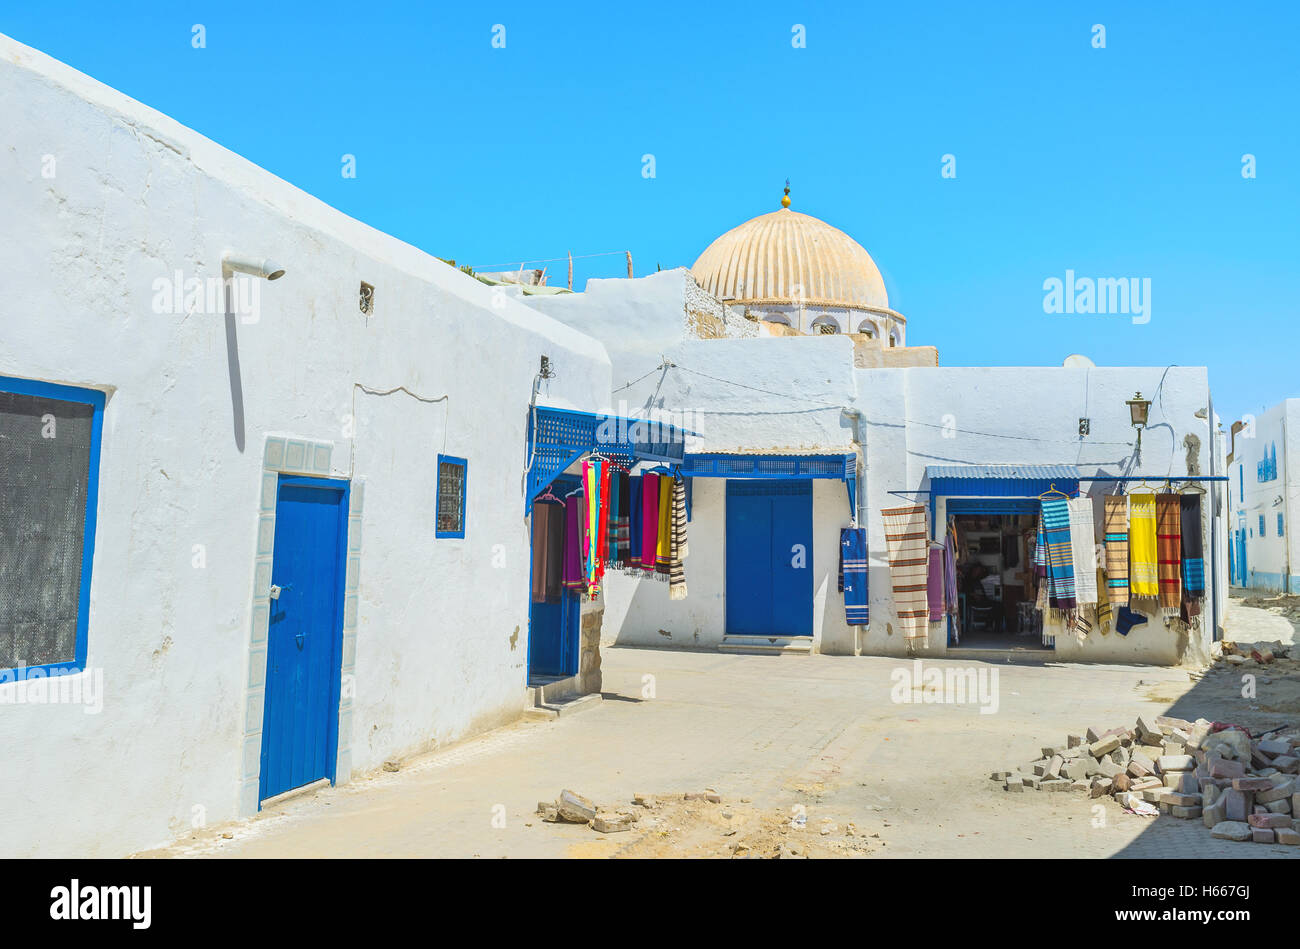 The historic neighborhood with numerous weaving workshops and draperies, Kairouan, Tunisia. - Stock Image